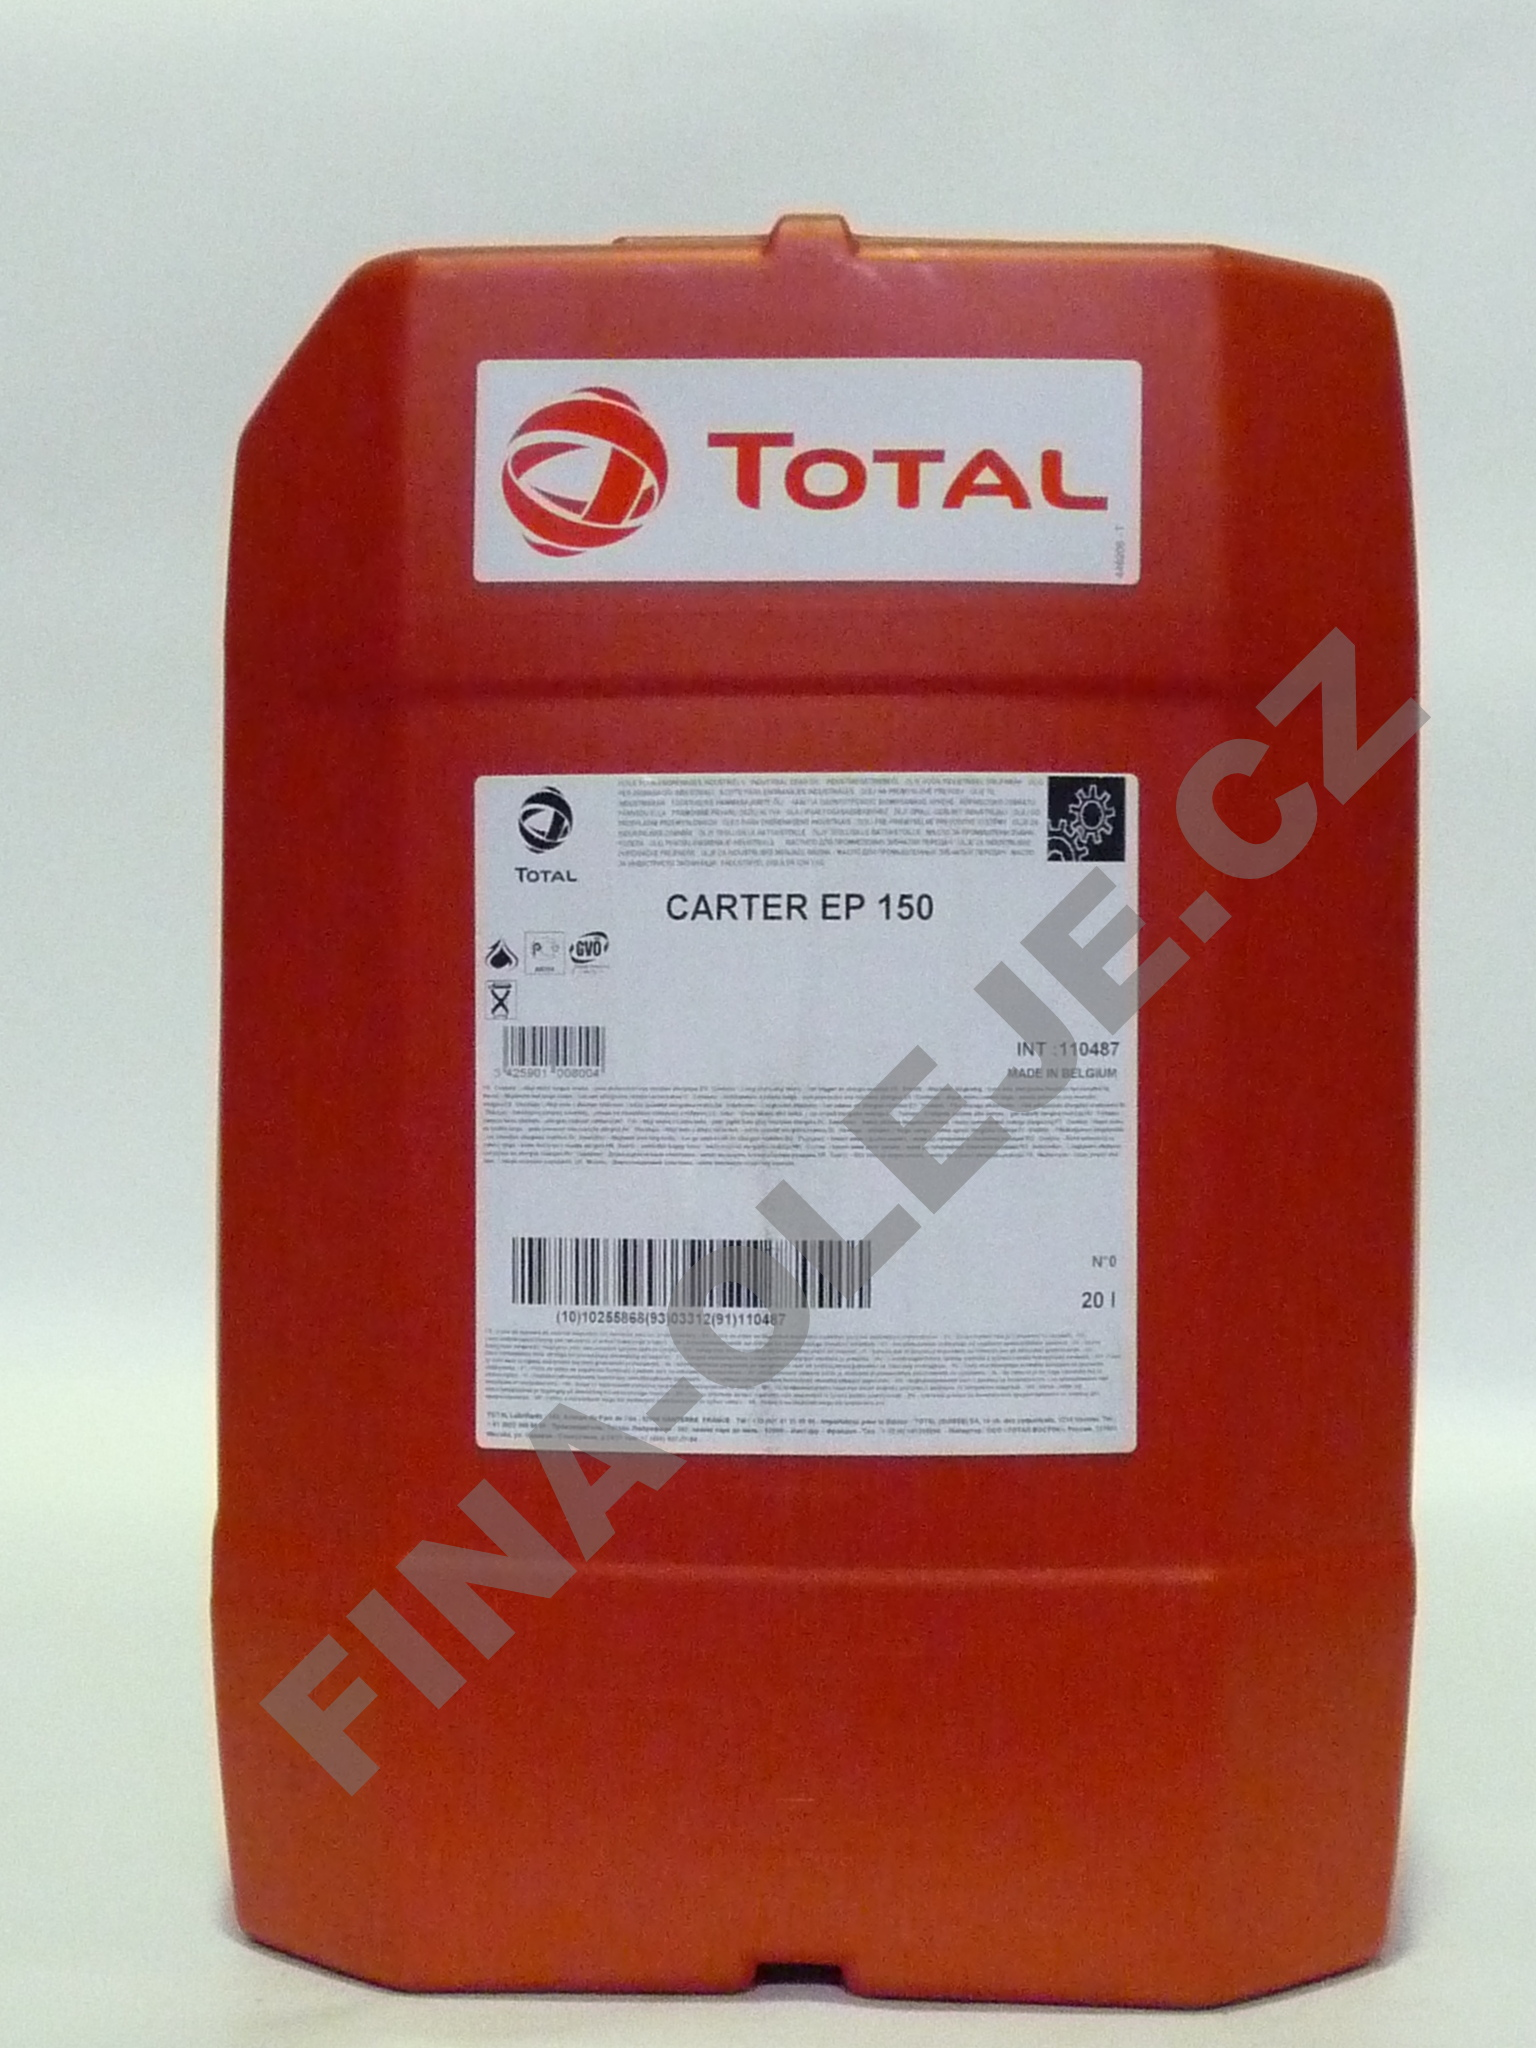 TOTAL CARTER EP 150 - 20 L